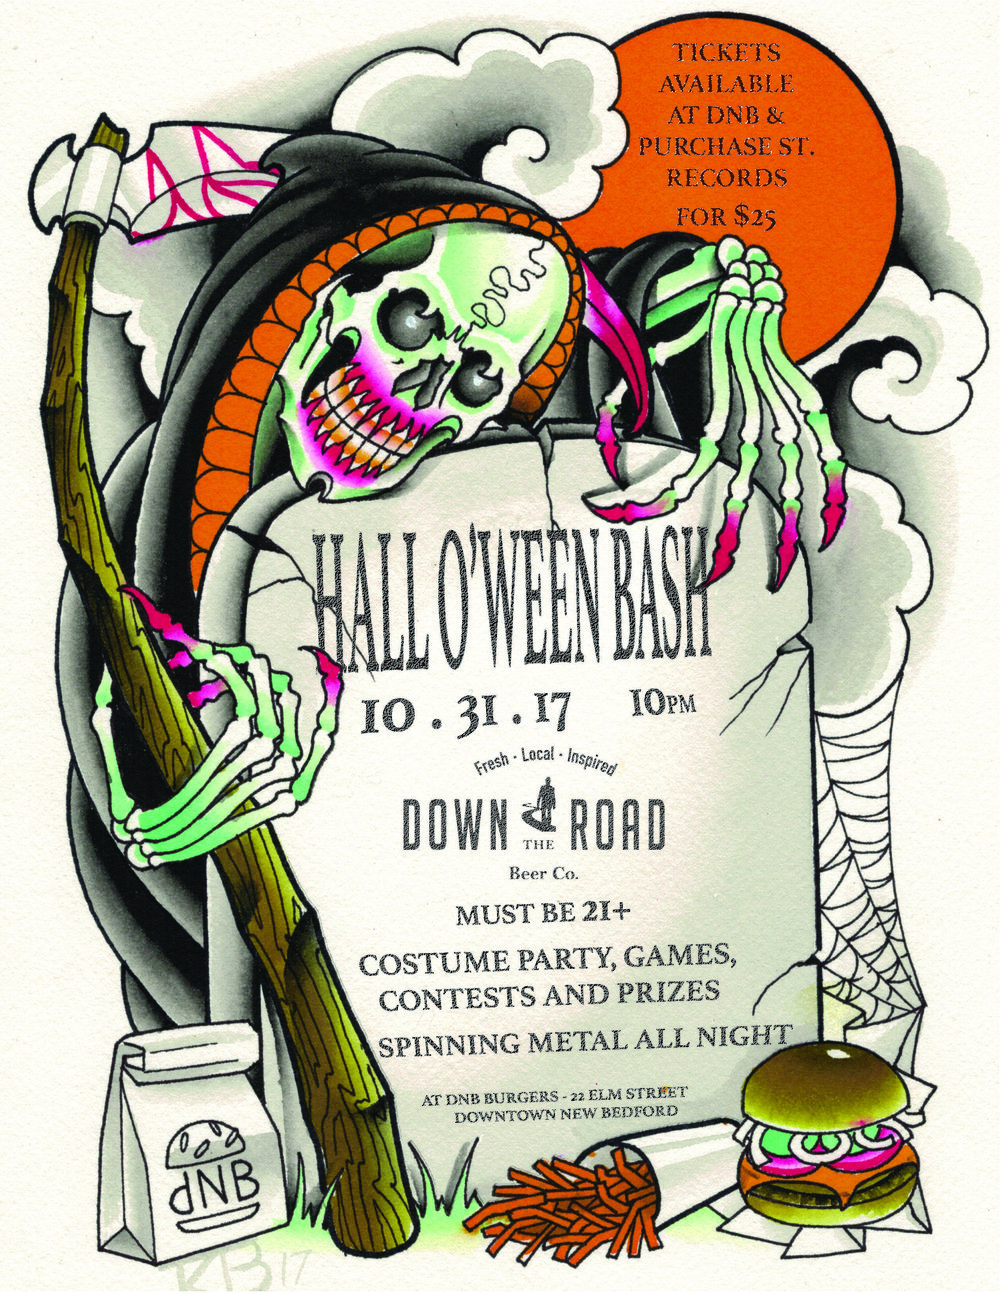 HALLO\'WEEN BASH WITH DNB — Down The Road Beer Co.